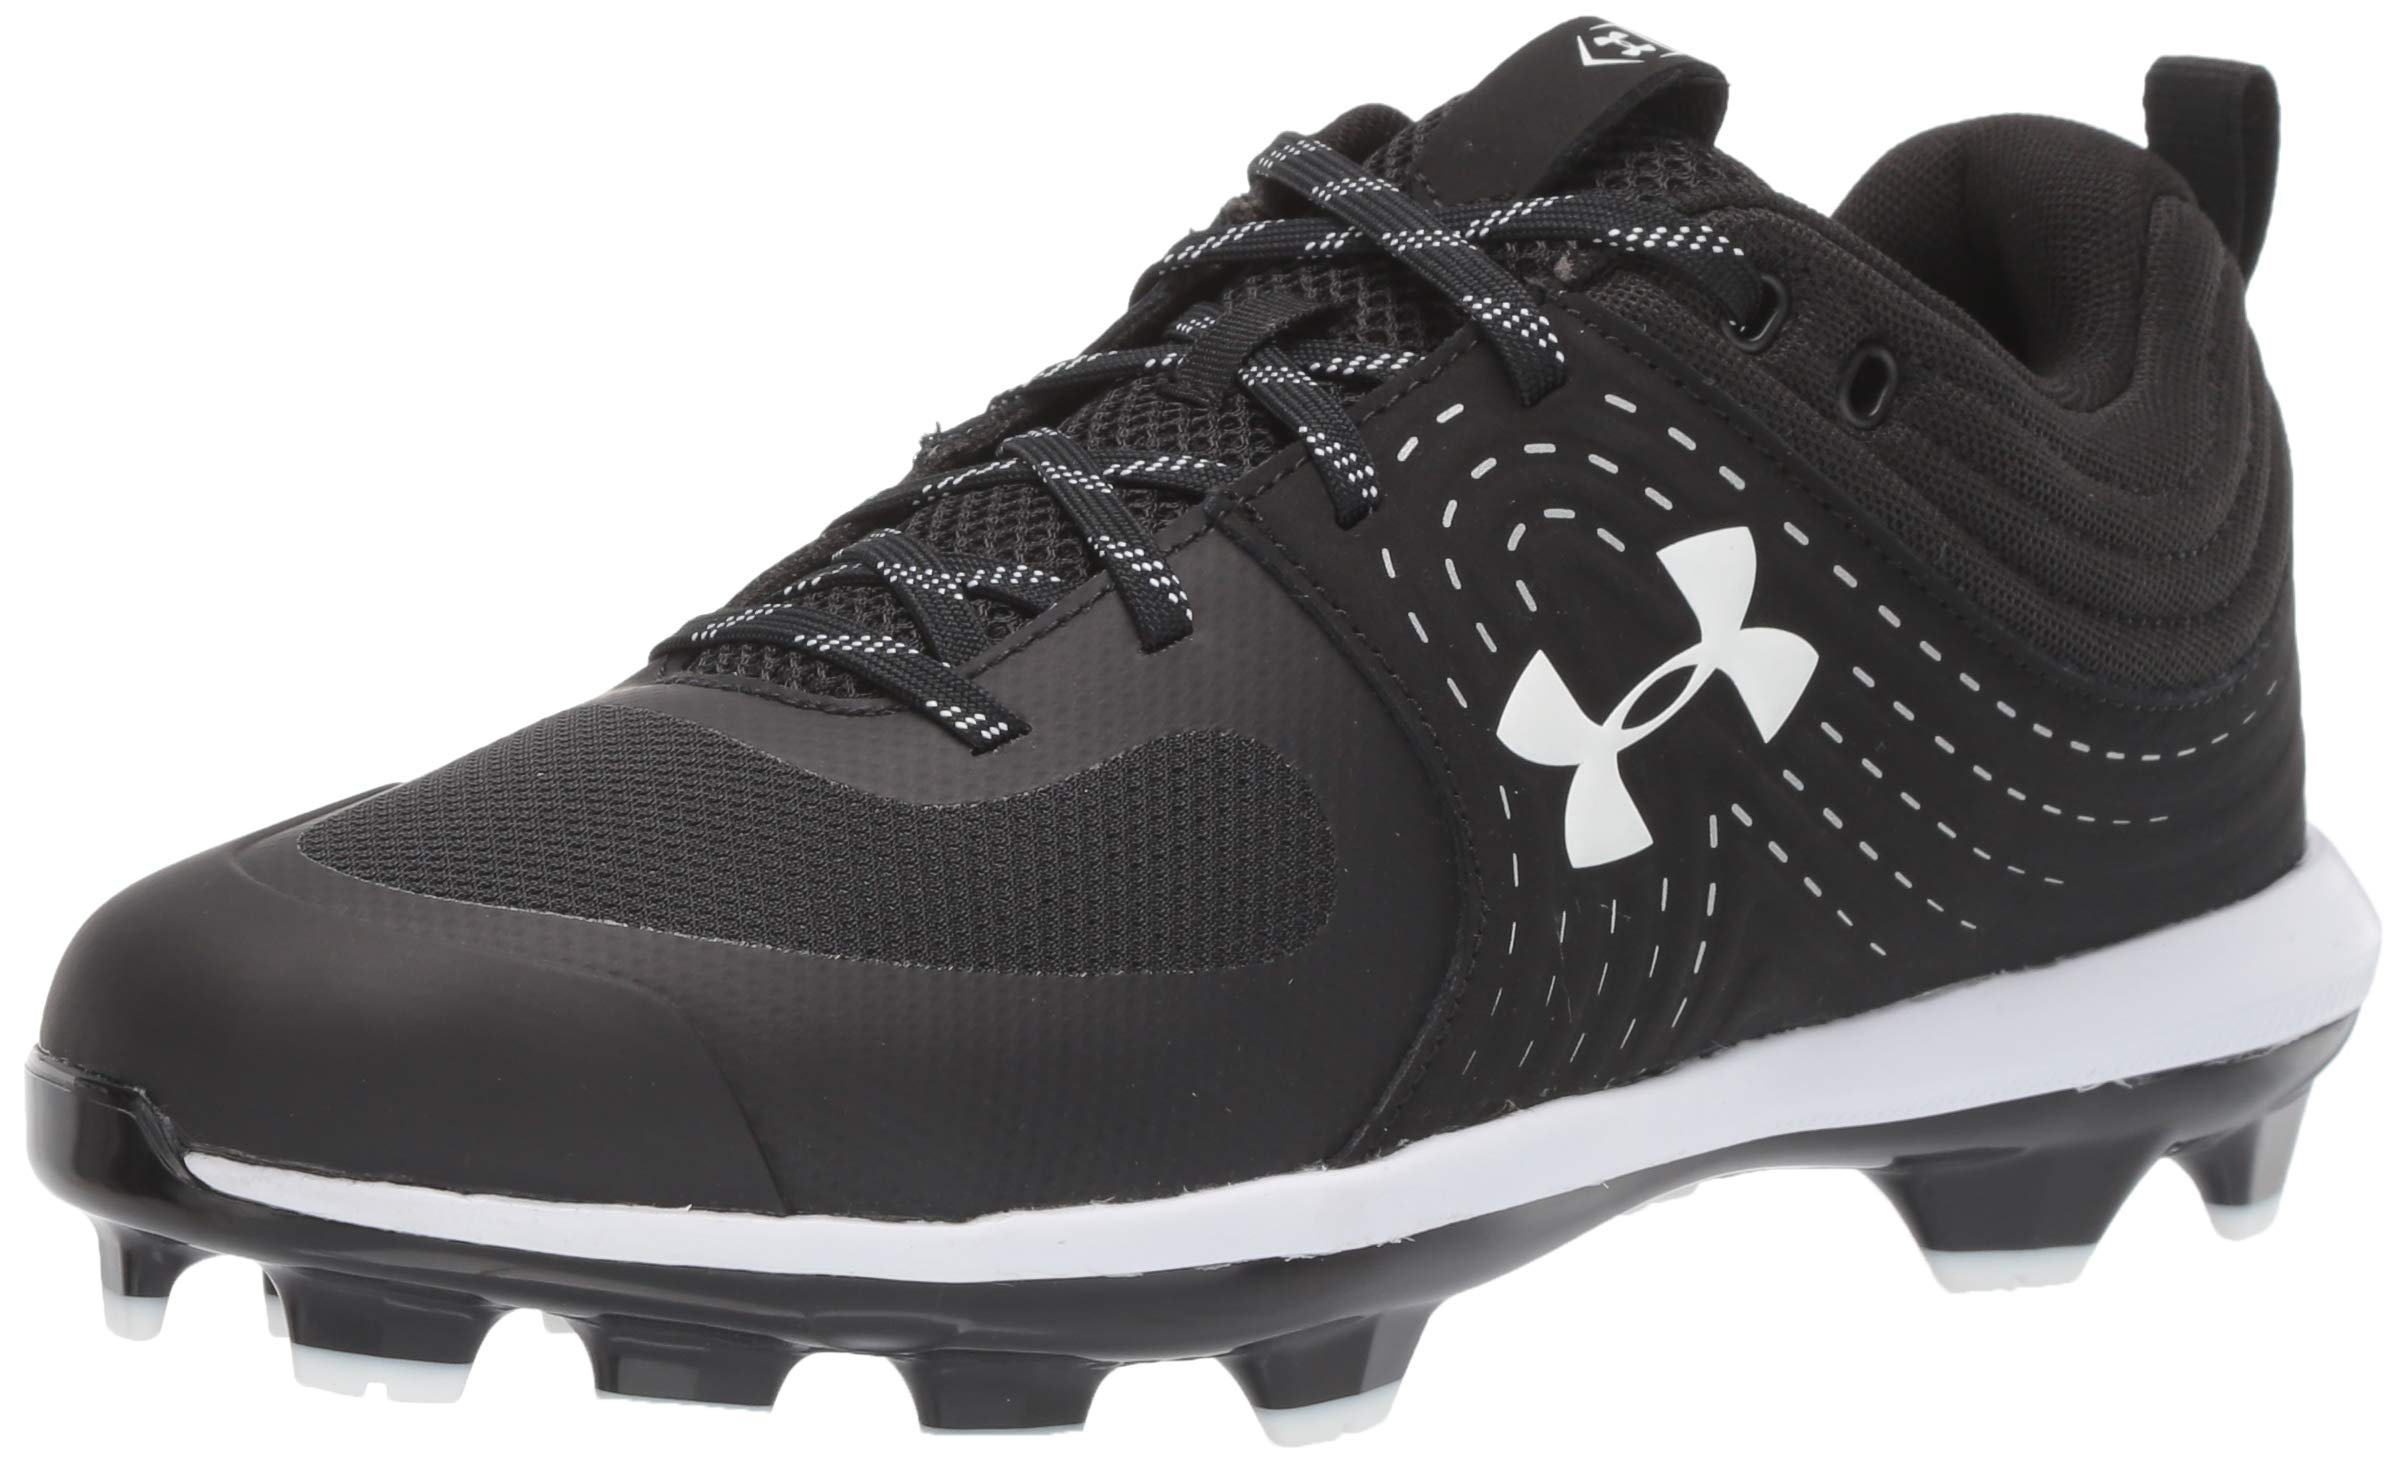 Under Armour Women's Glyde TPU Softball Shoe, Black (001)/White, 7 by Under Armour